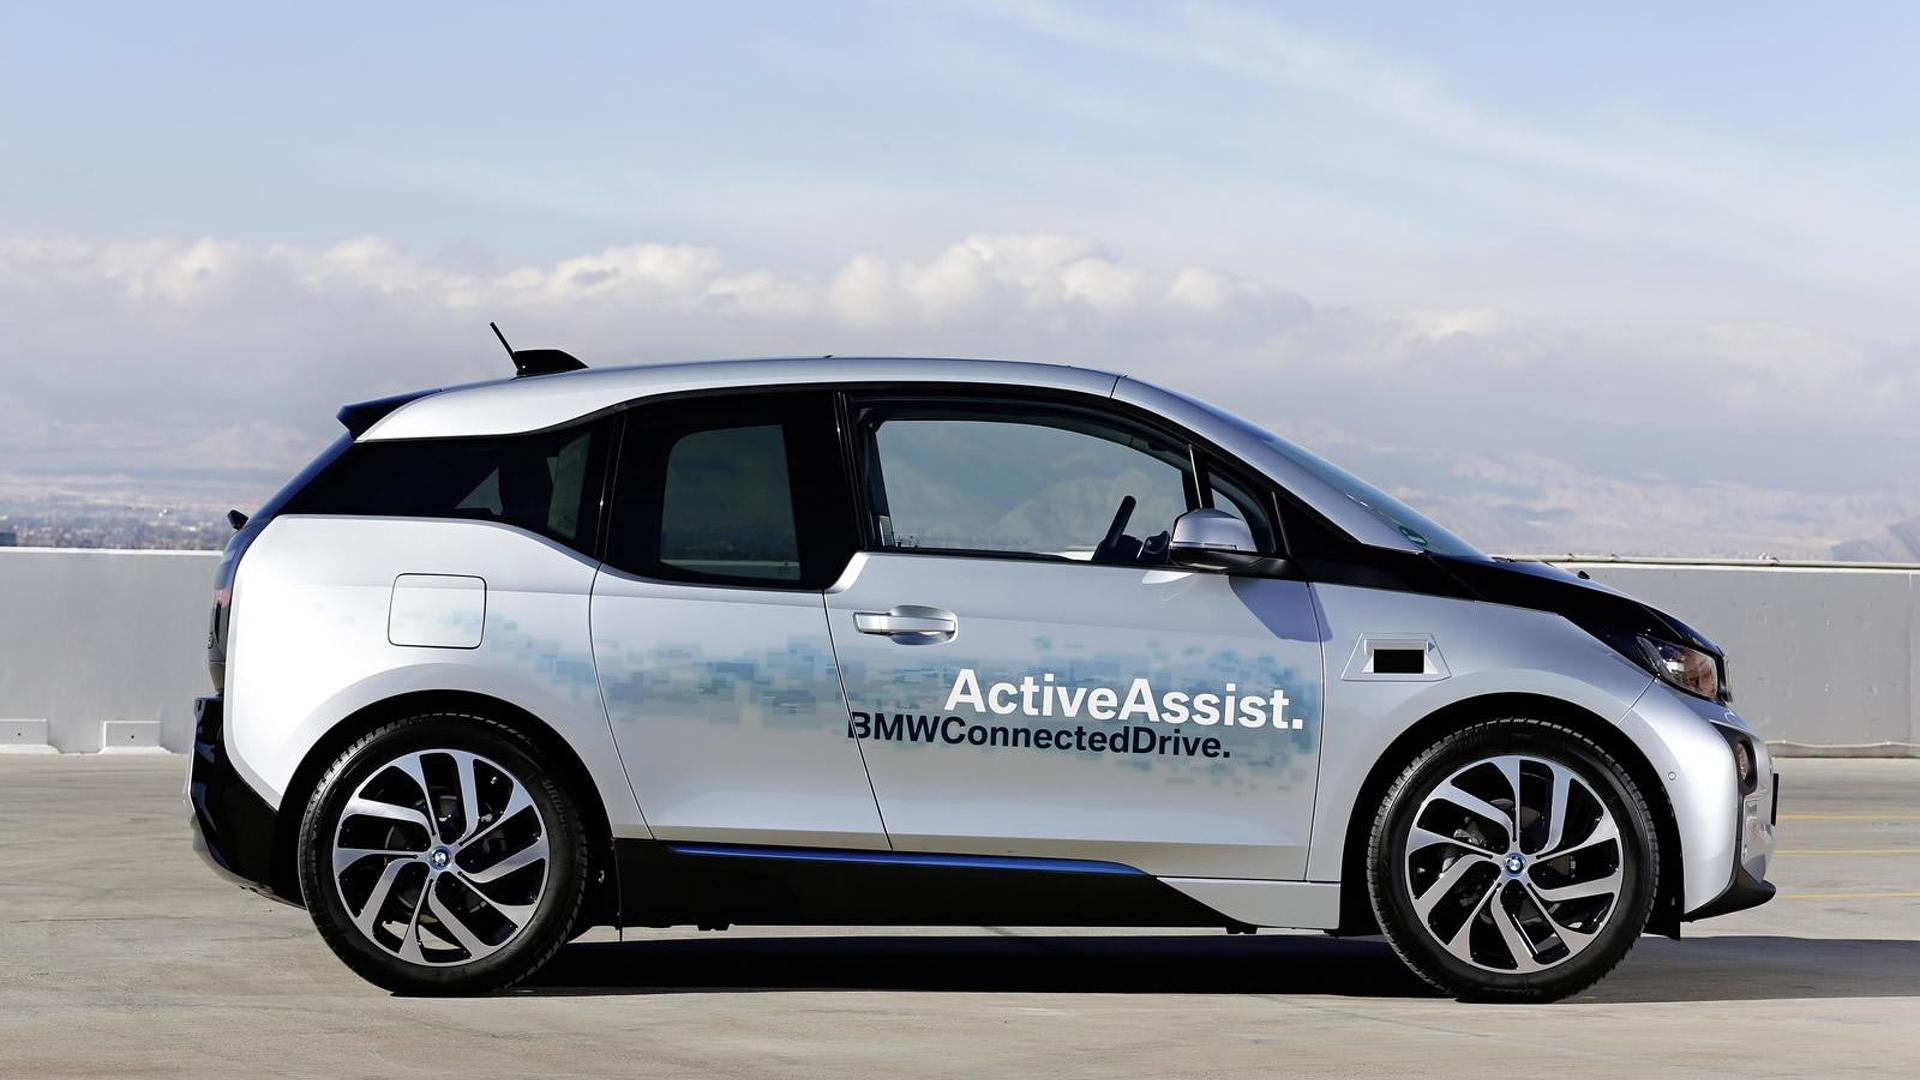 BMW i5 sedan details emerge, will be offered in electric and plug-in hybrid flavors